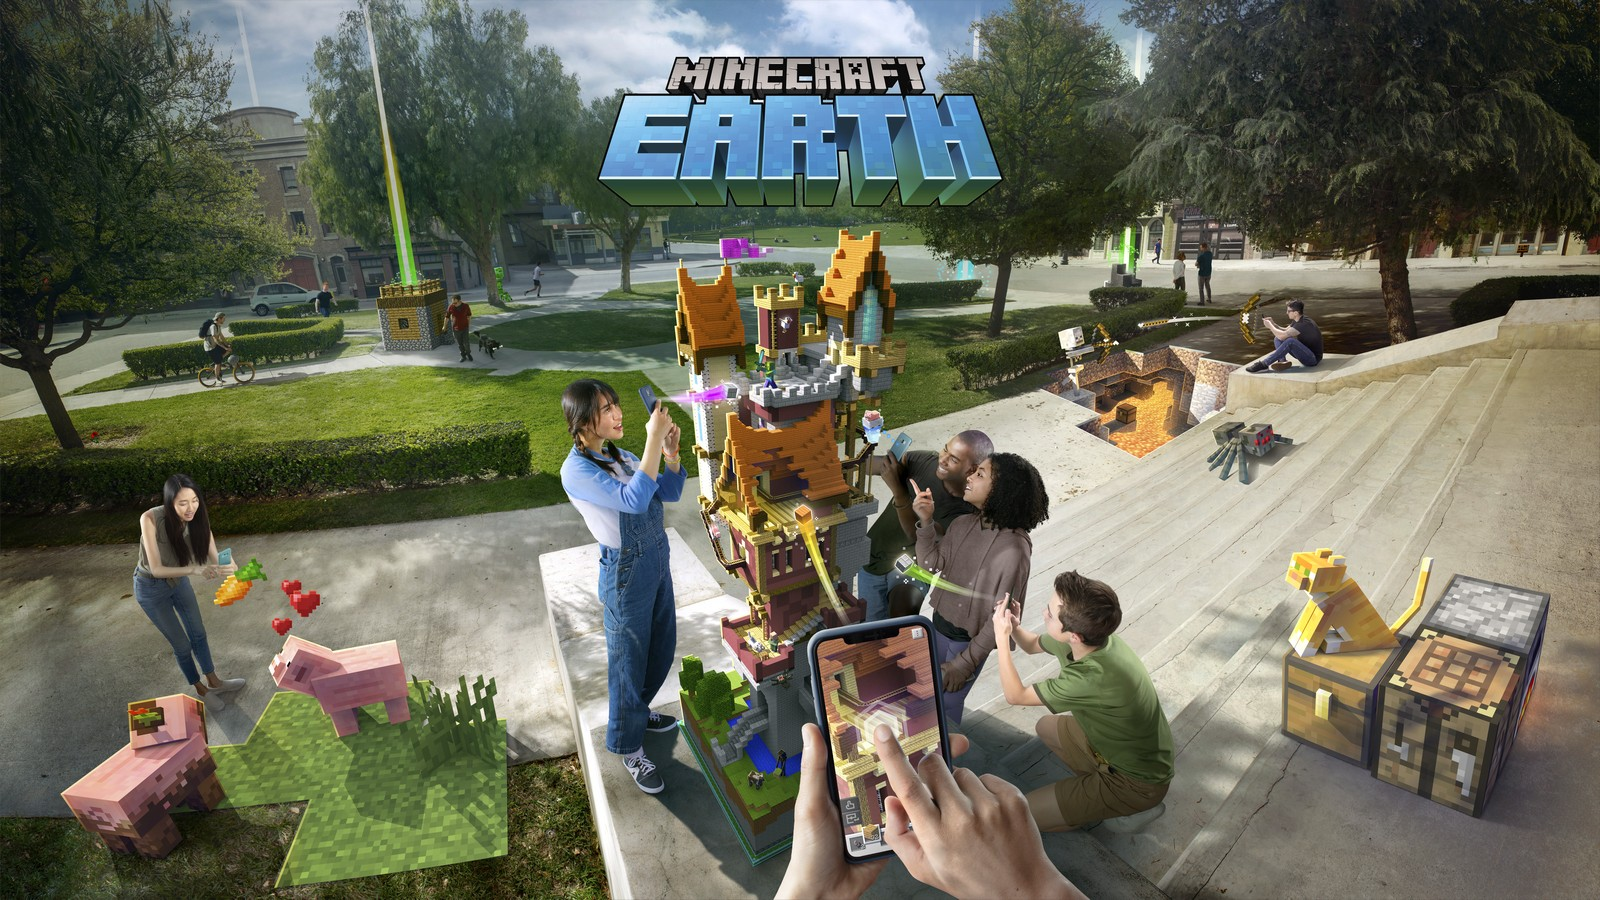 Minecraft Earth could push mobile AR gaming to new heights